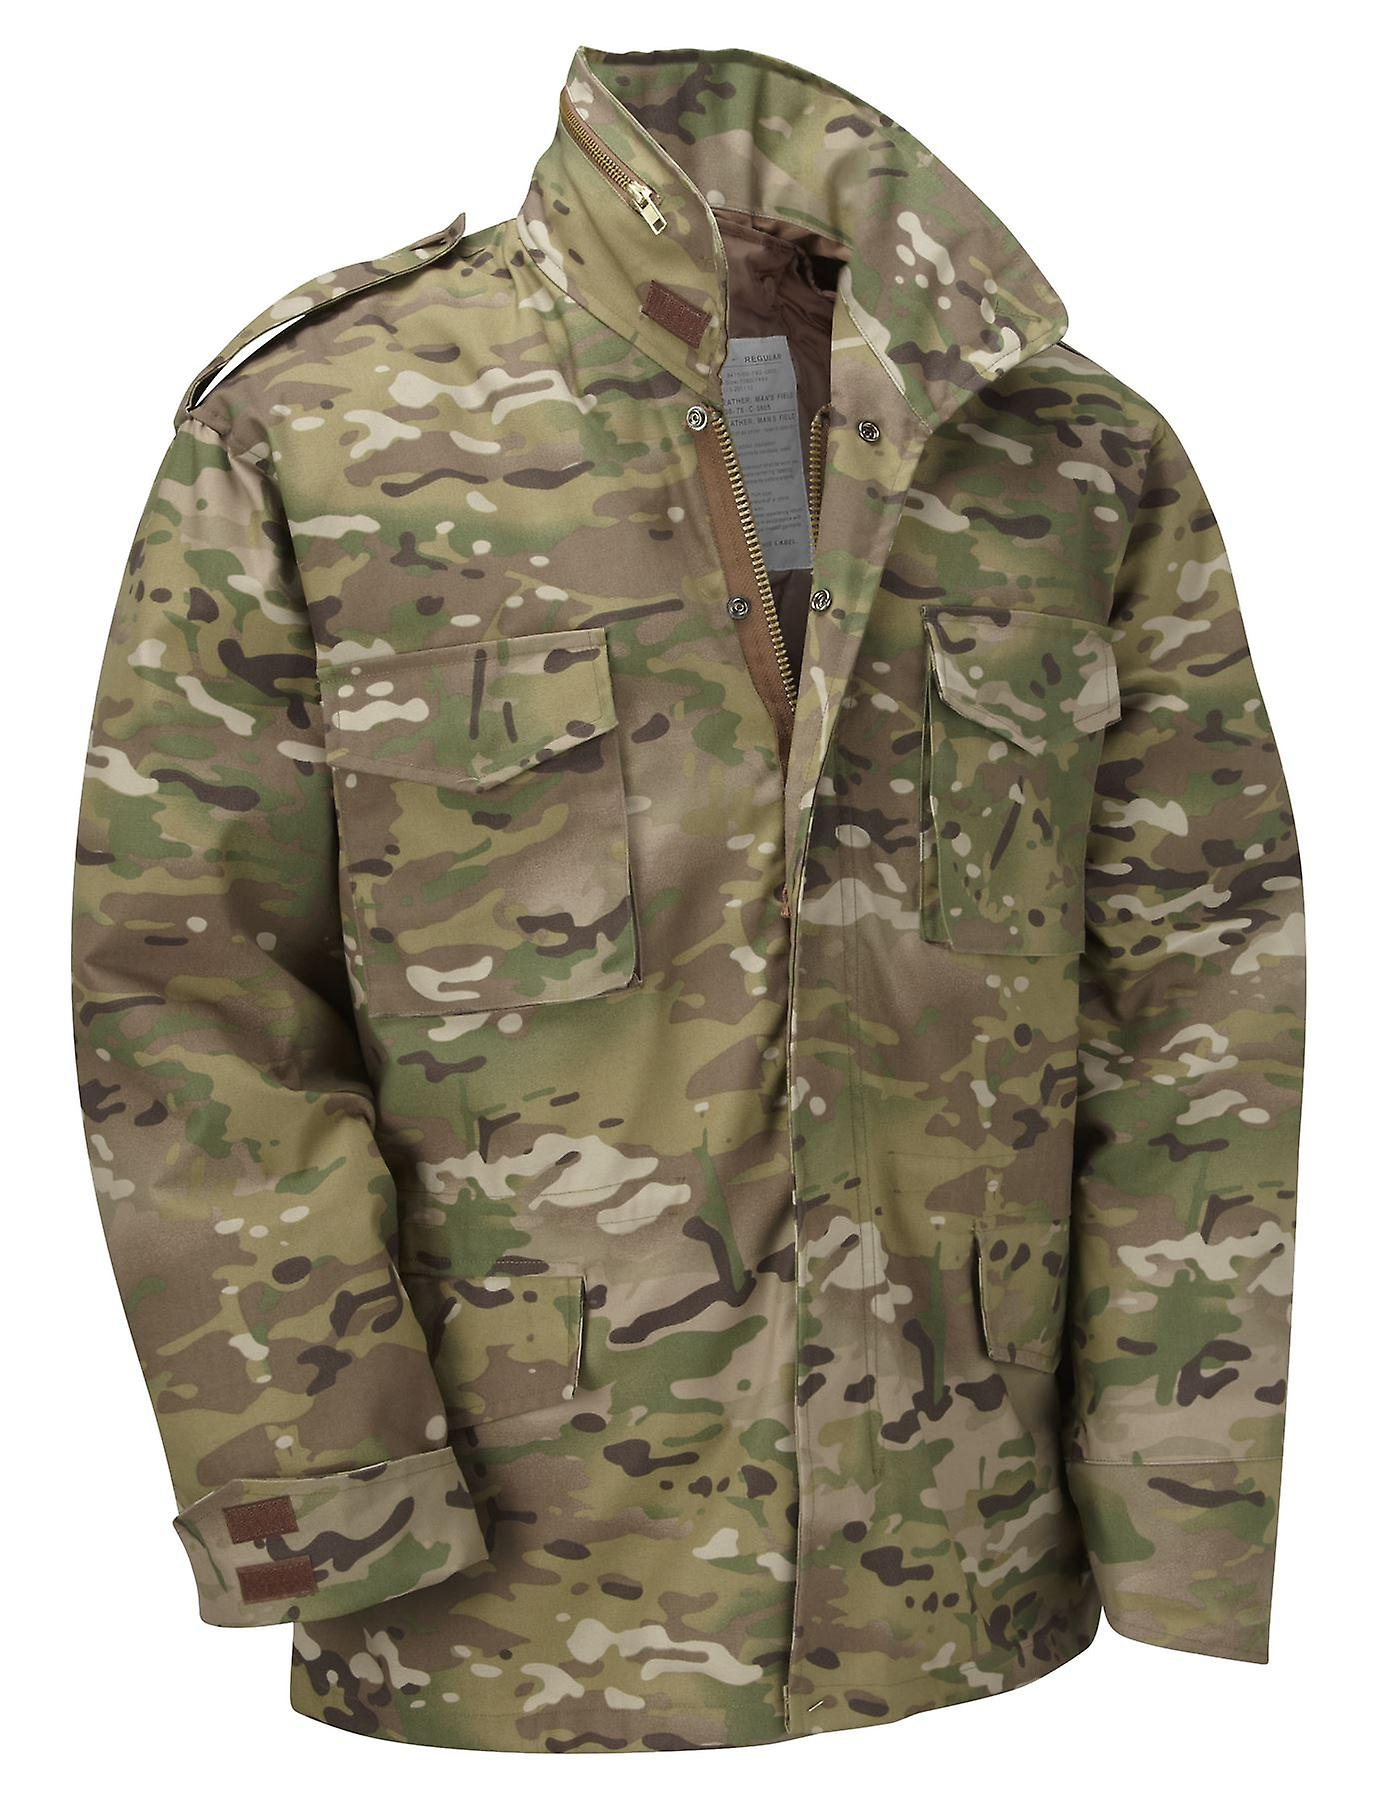 7c60700e1baa4 Vintage M65 Jacket Us Army Combat + Quilted Liner | Fruugo